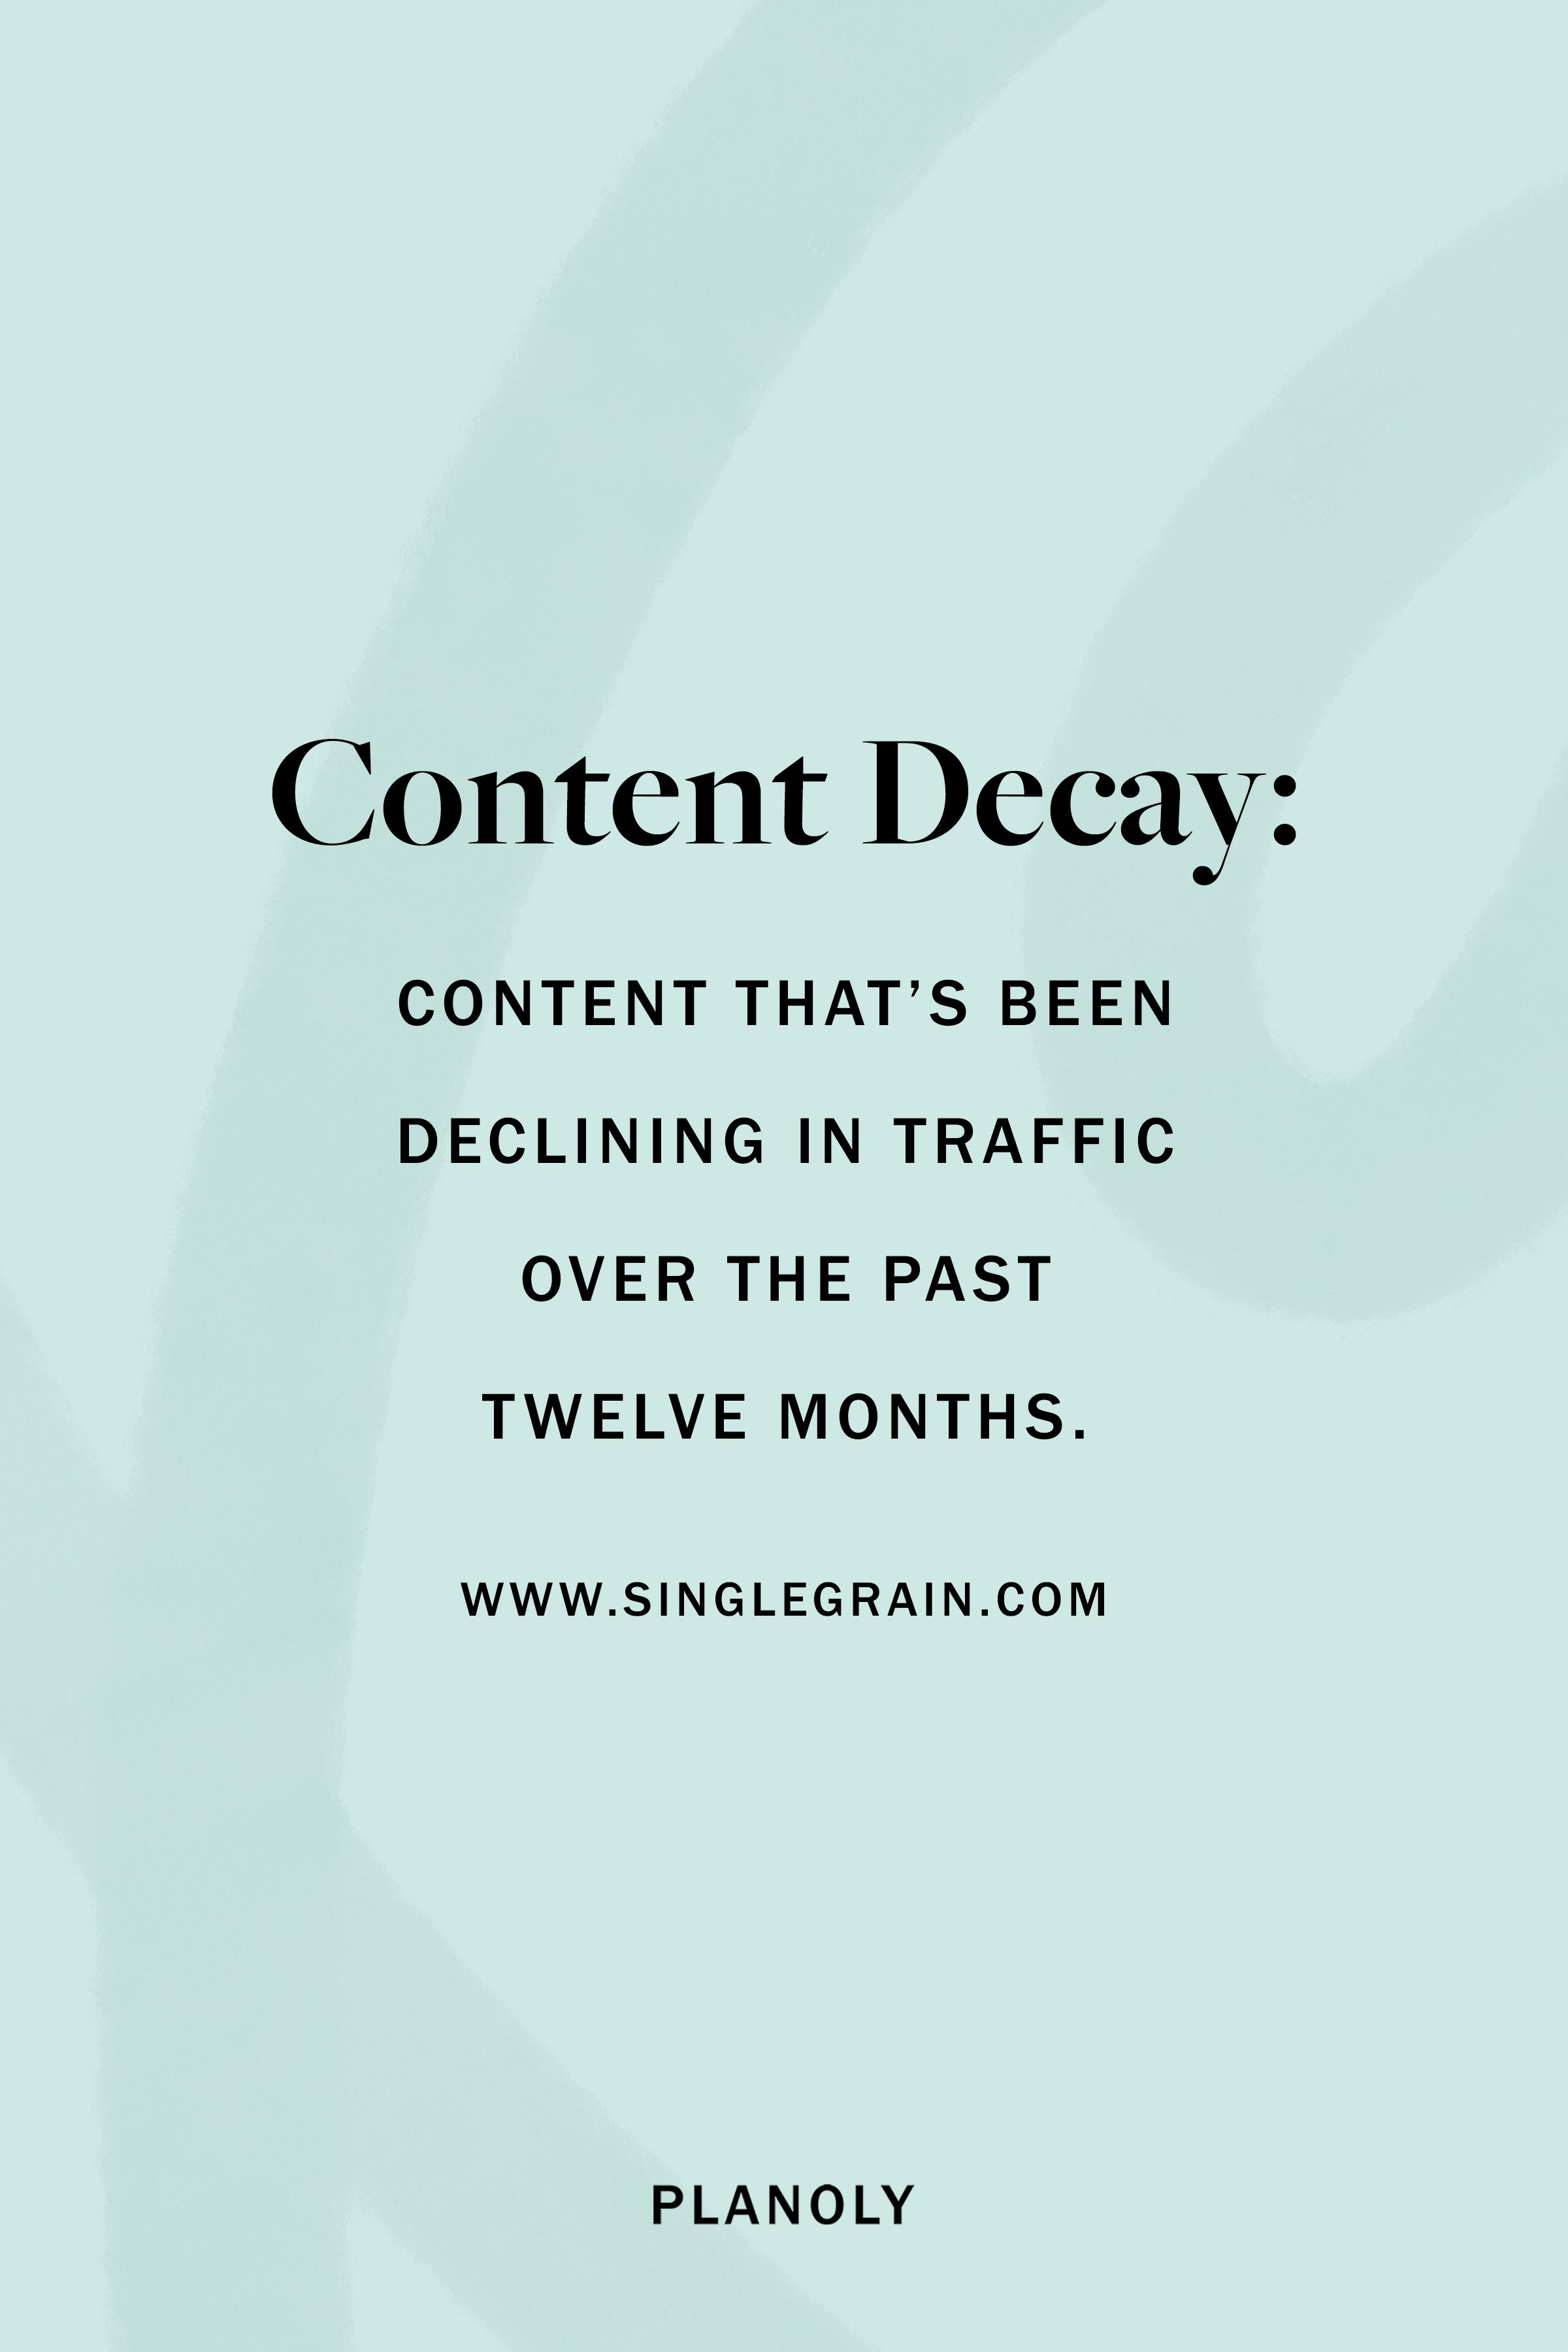 PLANOLY - Blog Post - How to Refresh Existing Content - Image 1